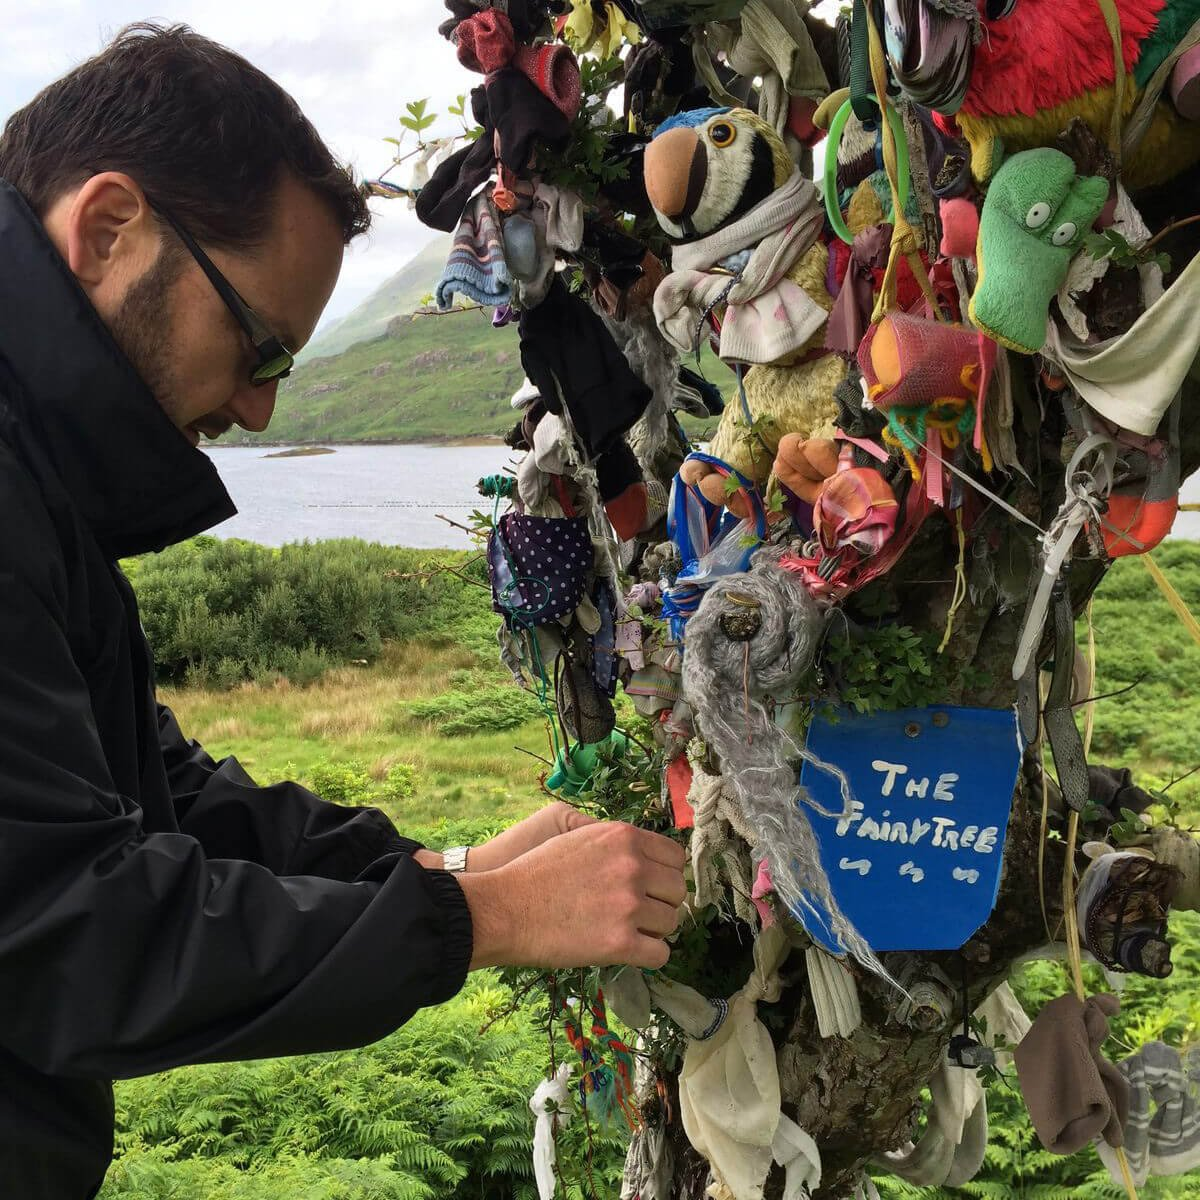 Fastening a charm to a fairy rag tree in Ireland